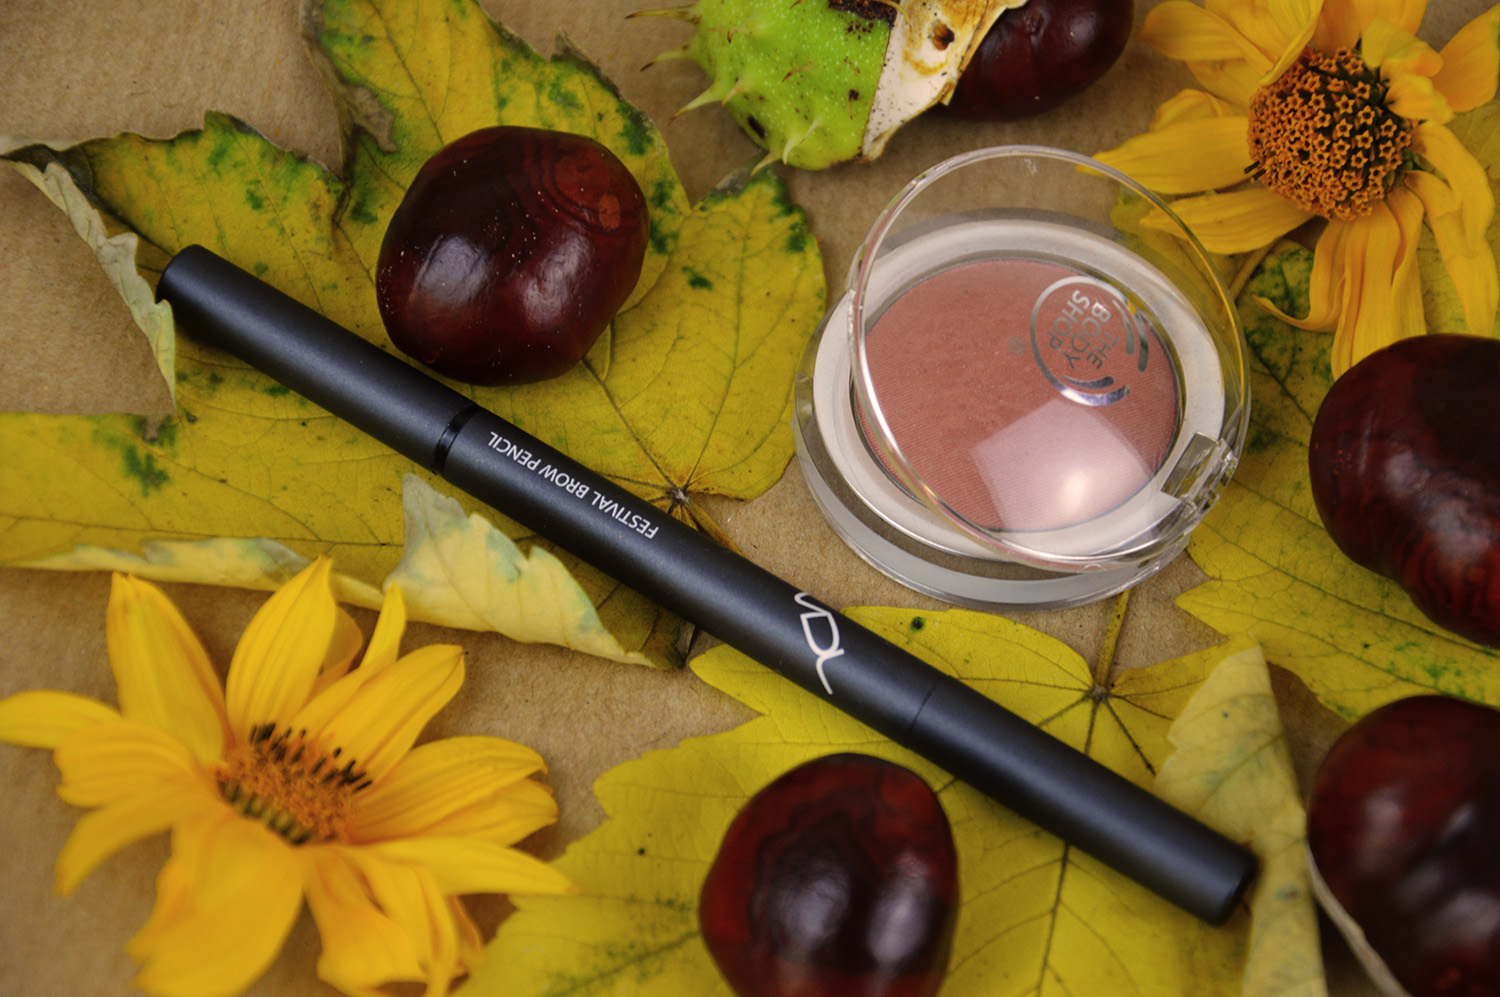 Augenbraunstift, THE BODY SHOP, All in one Cheek Colour Ambre, Review, www.advance-your-style.de, Beautyblog, Berlin, Makeup, Kosmetik, Hautpflege, Herbst, Favoriten, Let's Talk About Beauty,